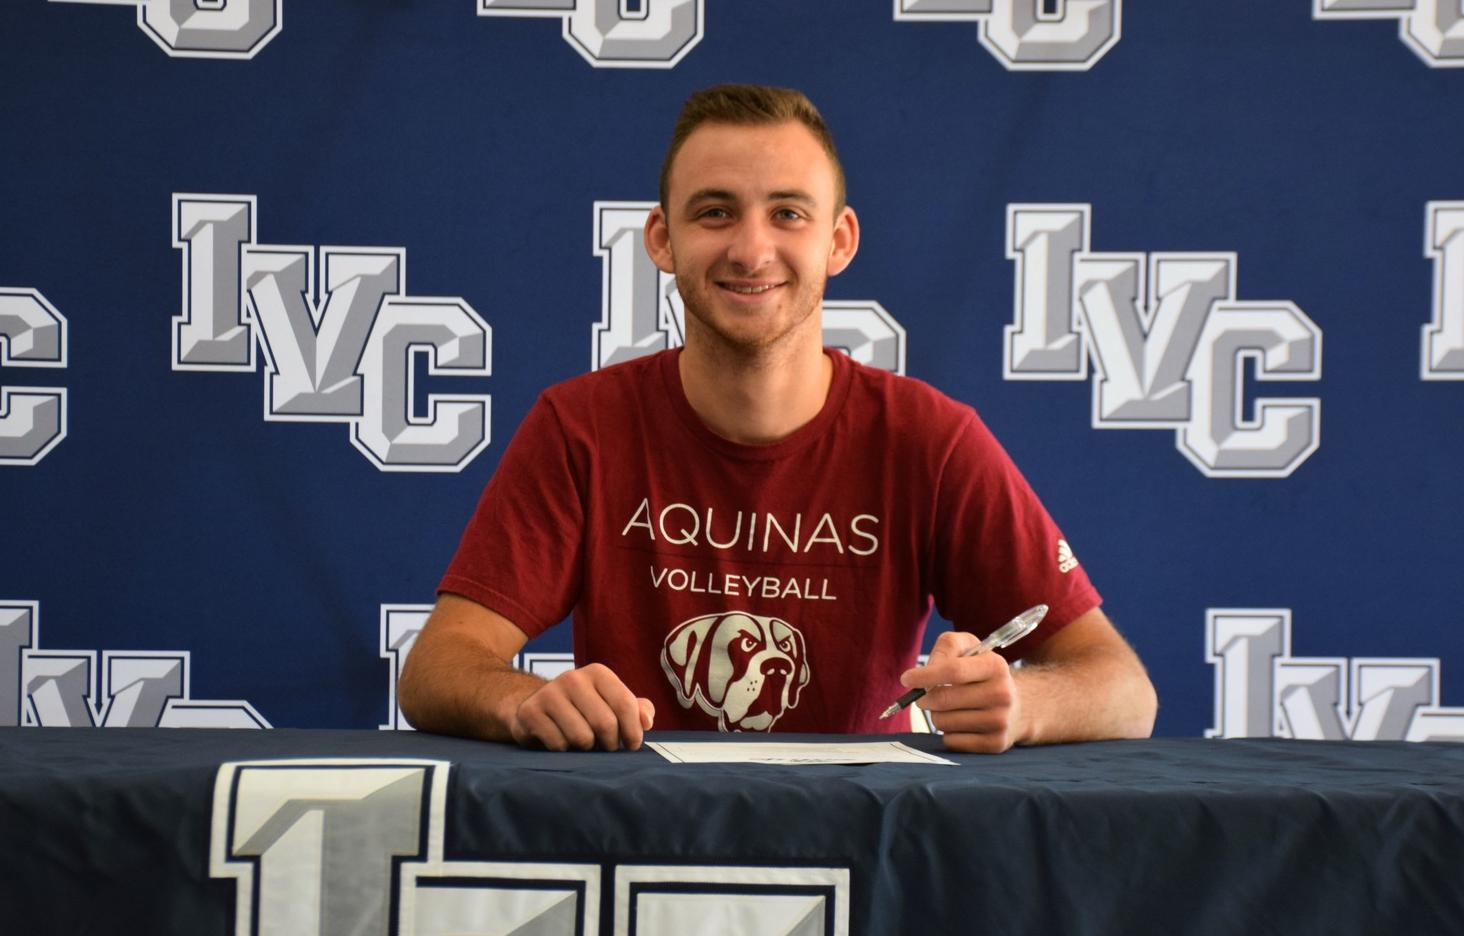 Men's volleyball player Josh Evers headed to Aquinas College